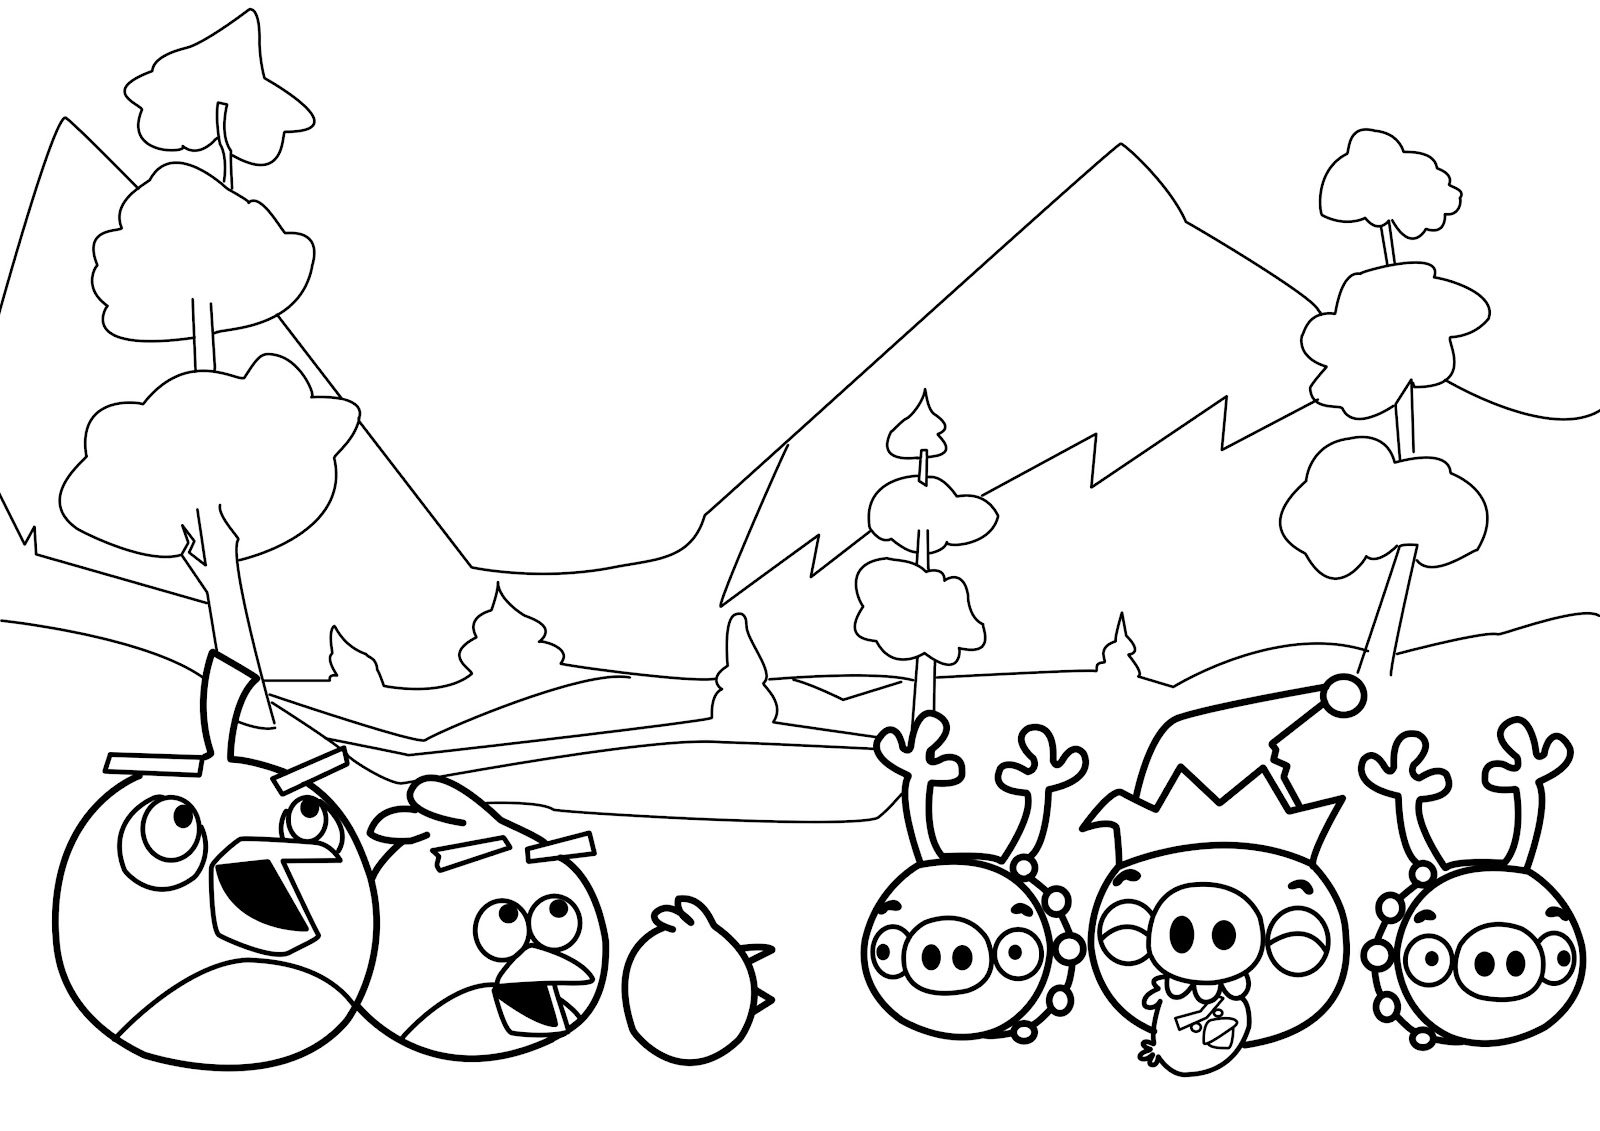 Yellow Coloring Pages: Angry Bird Coloring Pages